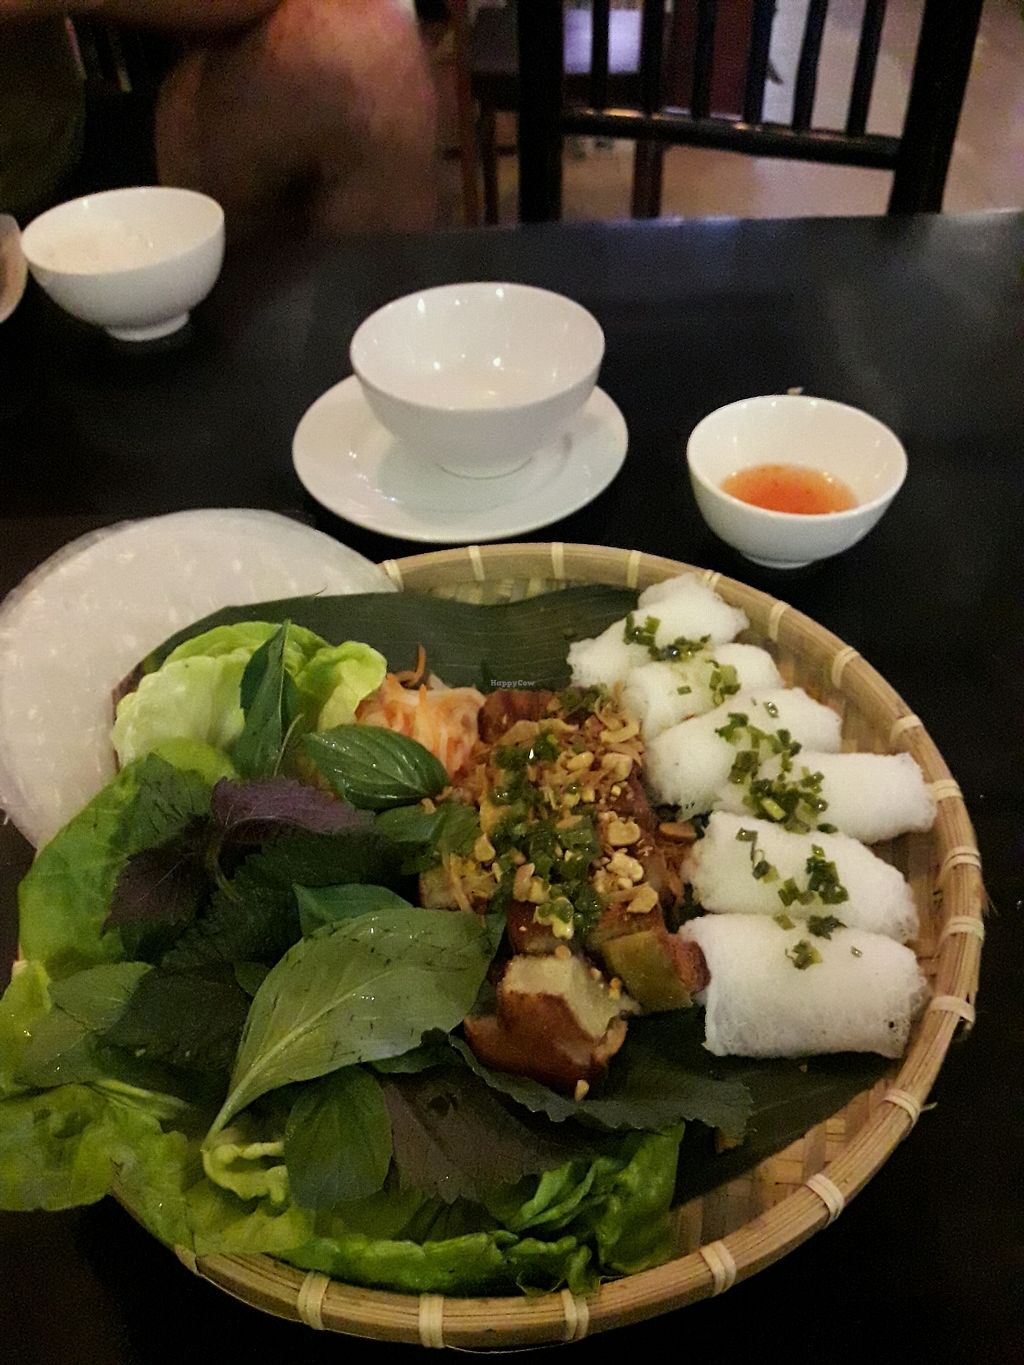 """Photo of Royal Sai Gon   by <a href=""""/members/profile/FineGiebler"""">FineGiebler</a> <br/>very delicious spring rolls to roll by yourself <br/> February 3, 2018  - <a href='/contact/abuse/image/75977/354486'>Report</a>"""